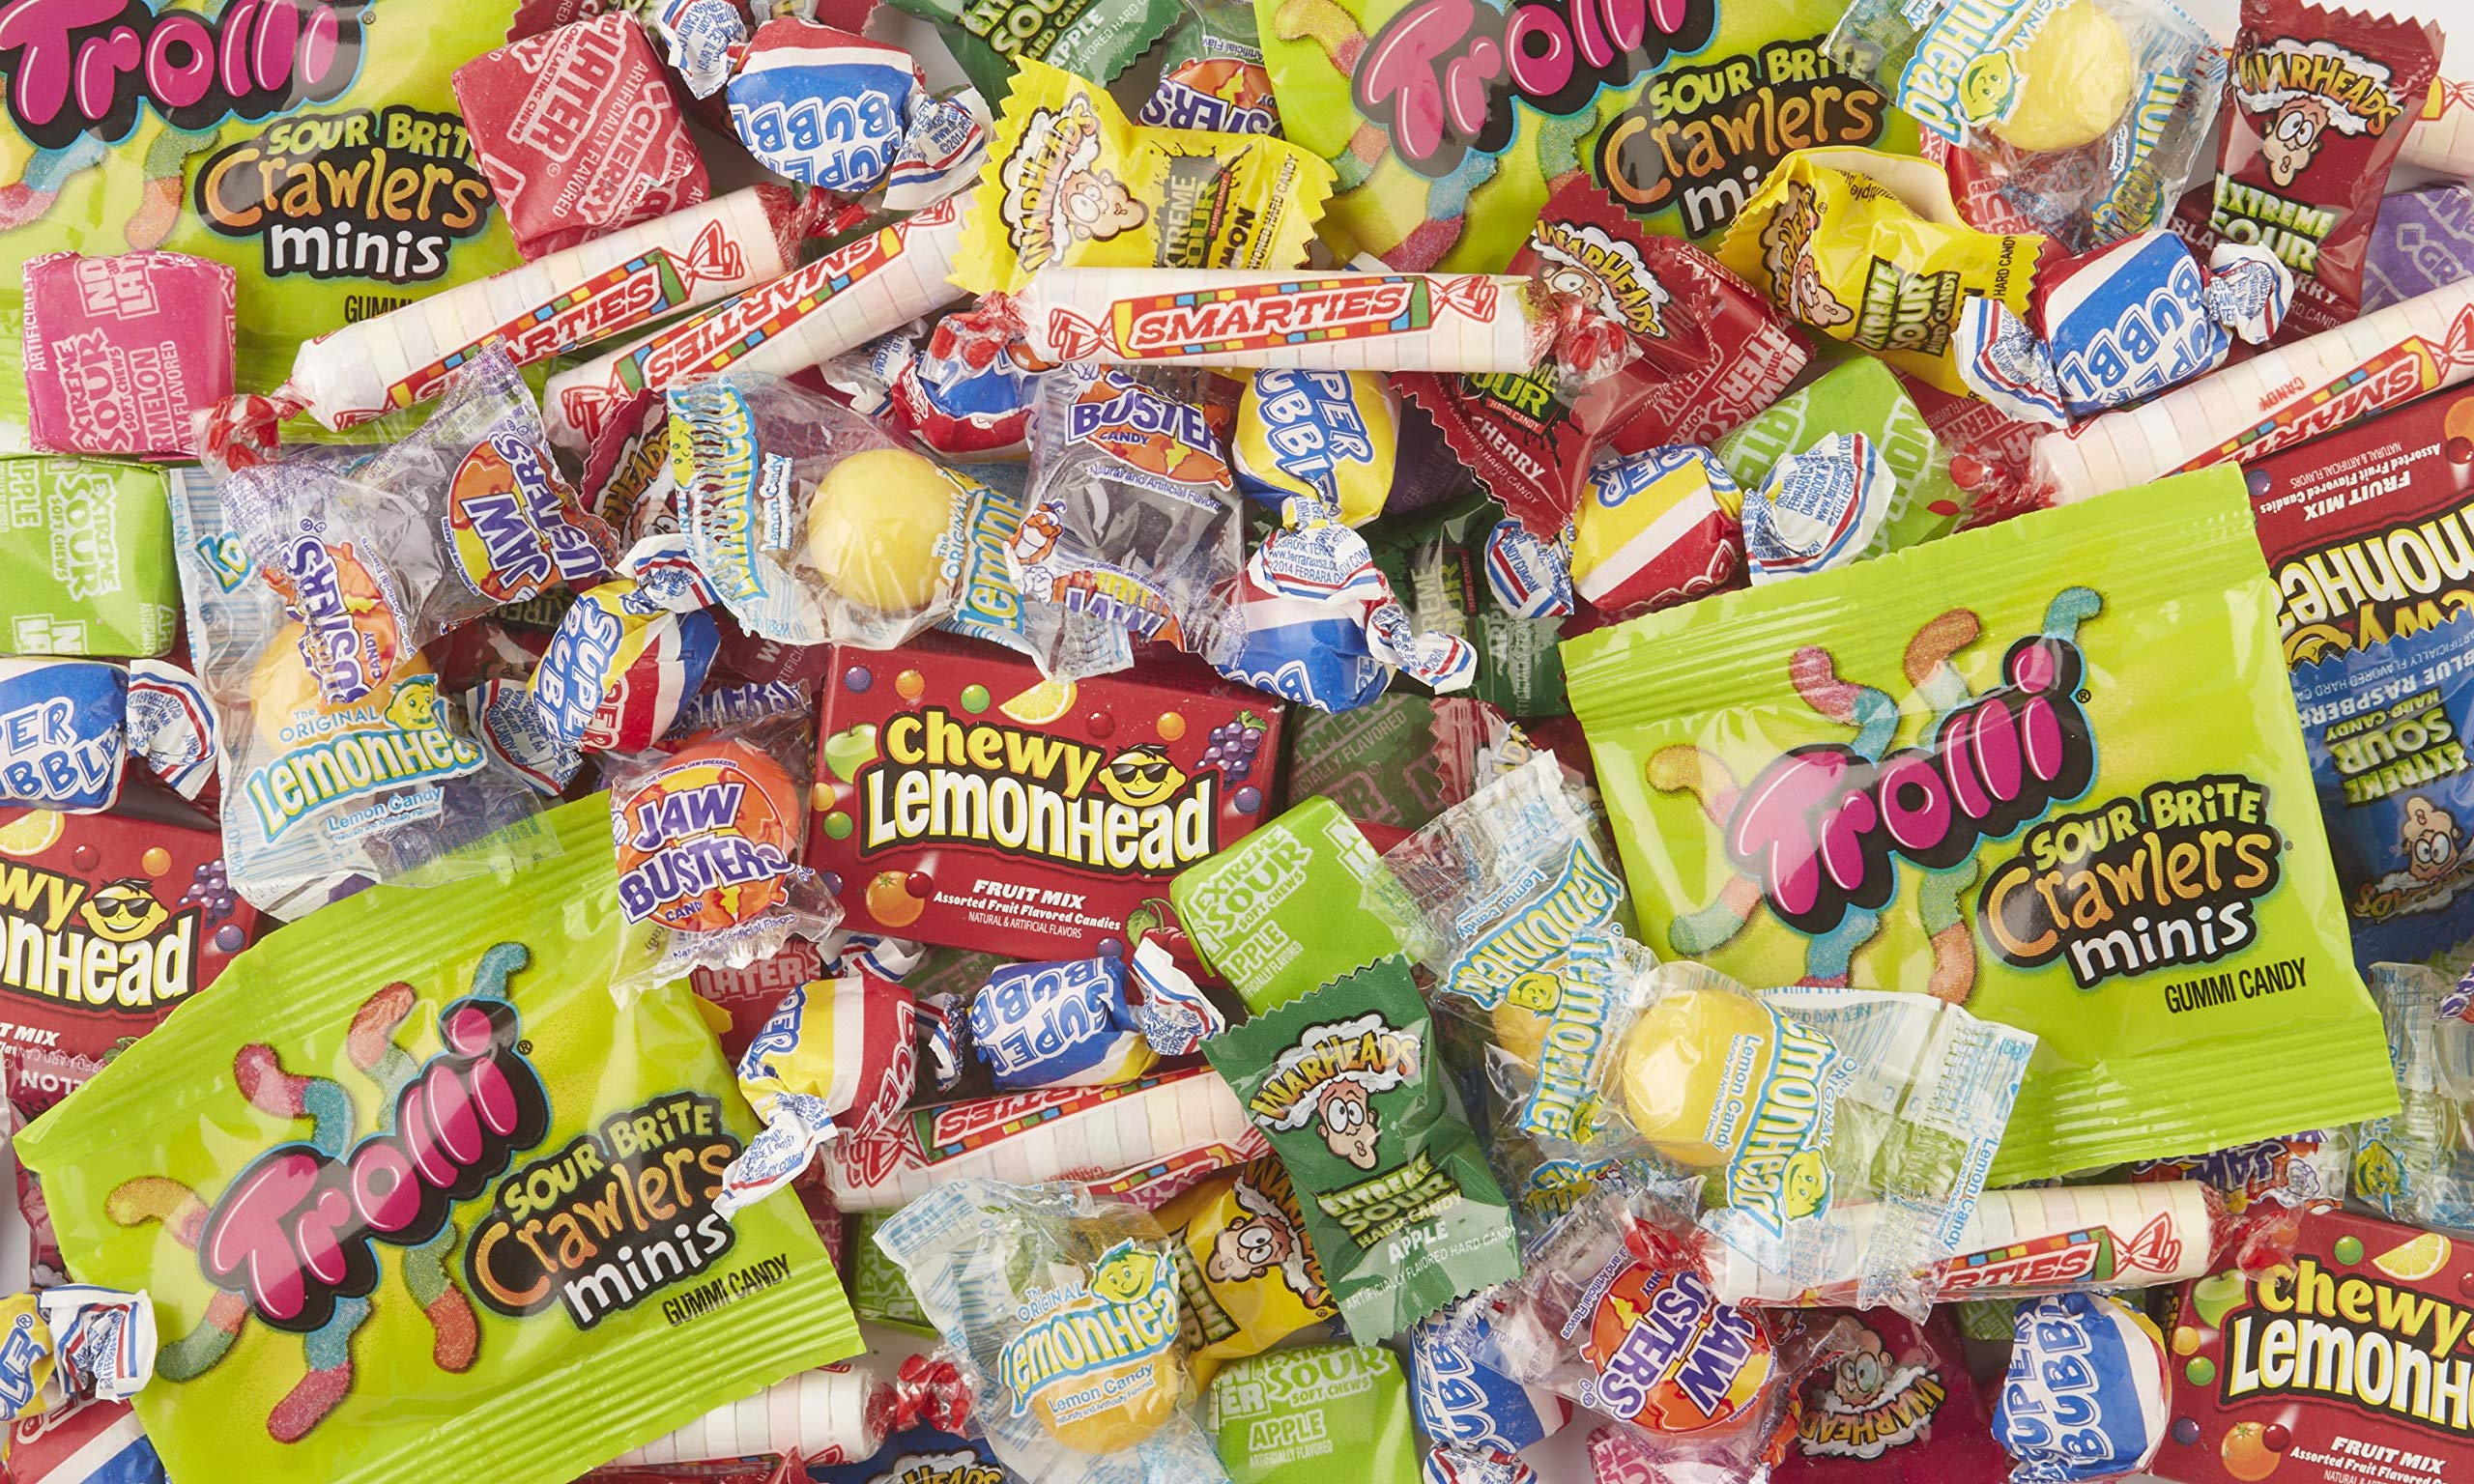 Brach's Sweet & Sour Kiddie Mix Variety Pack Individually Wrapped Candies, 4.36 Pound Bulk Candy Bag by Brach's